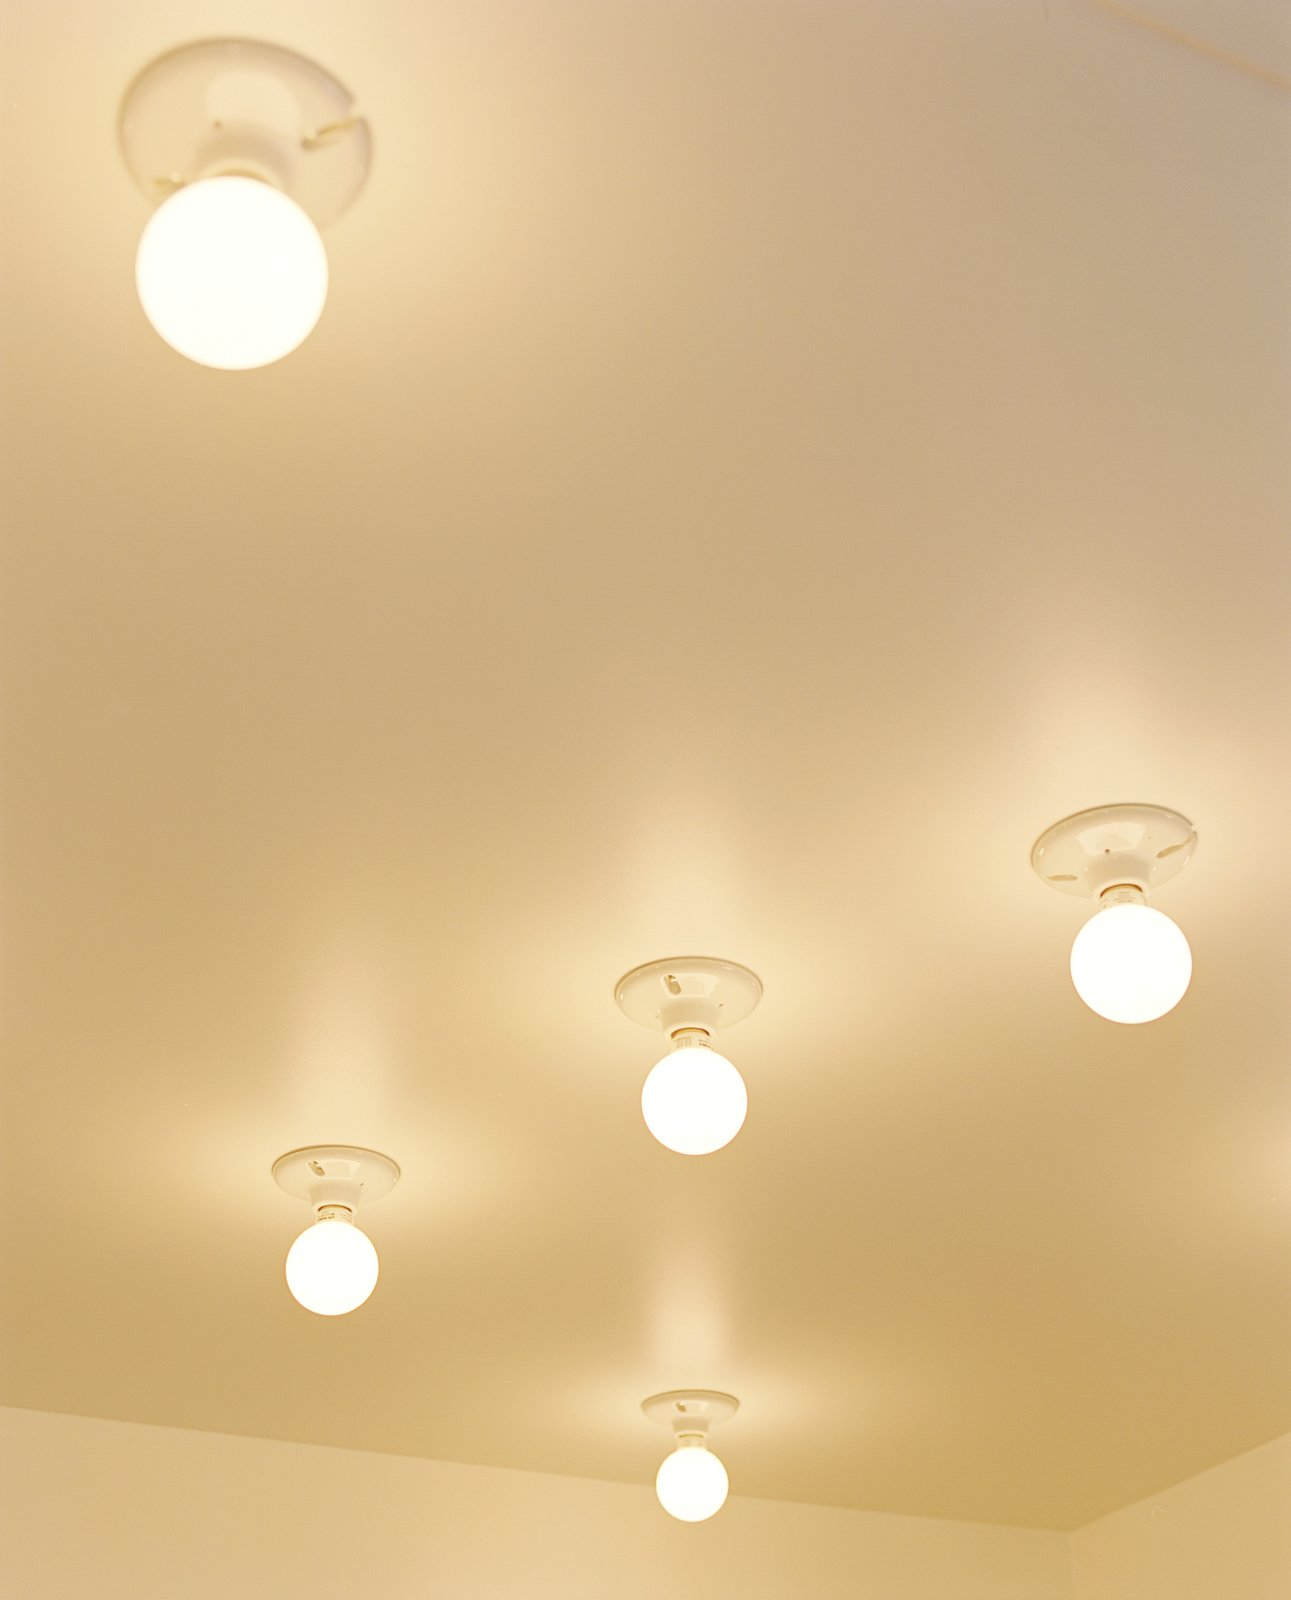 In the kitchen, compact fluorescent lightbulbs affixed to the ceiling are a simple solution.